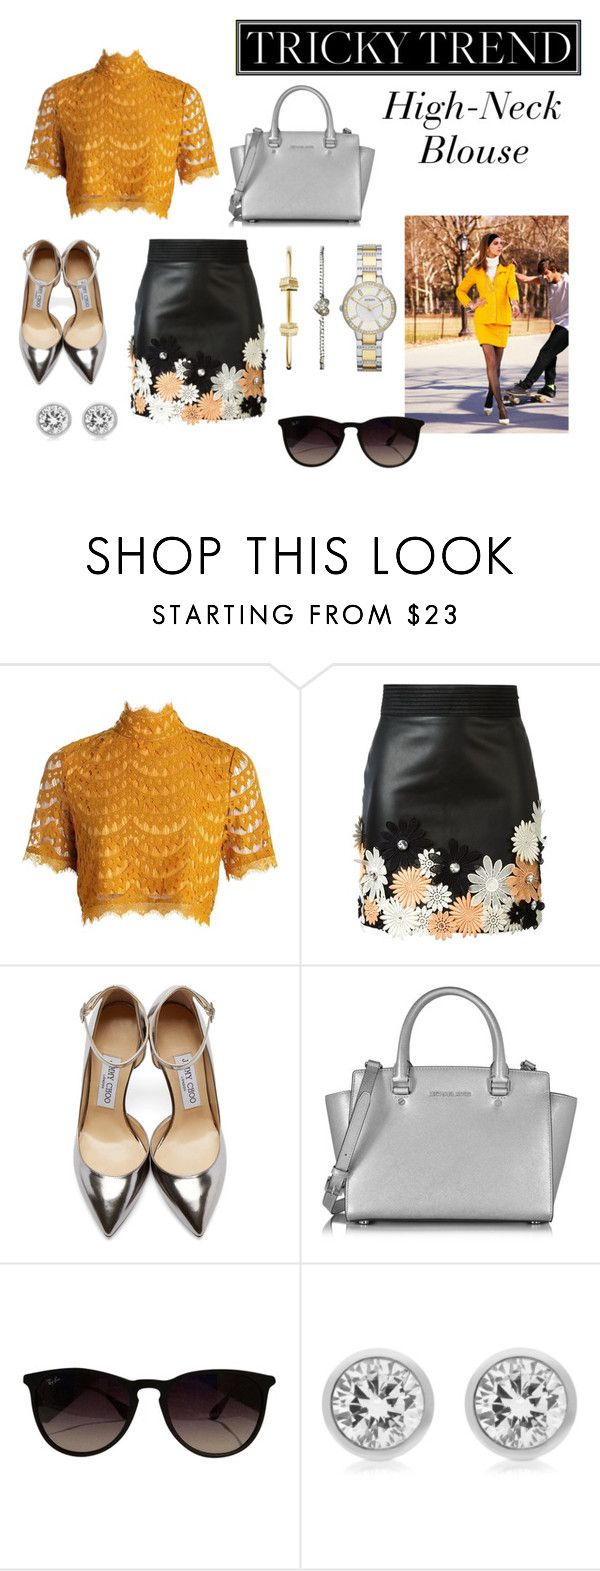 """Loving this trend forever"" by mapiloria ❤ liked on Polyvore featuring Emanuel Ungaro, Jimmy Choo, Michael Kors, Ray-Ban, FOSSIL, women's clothing, women's fashion, women, female and woman"